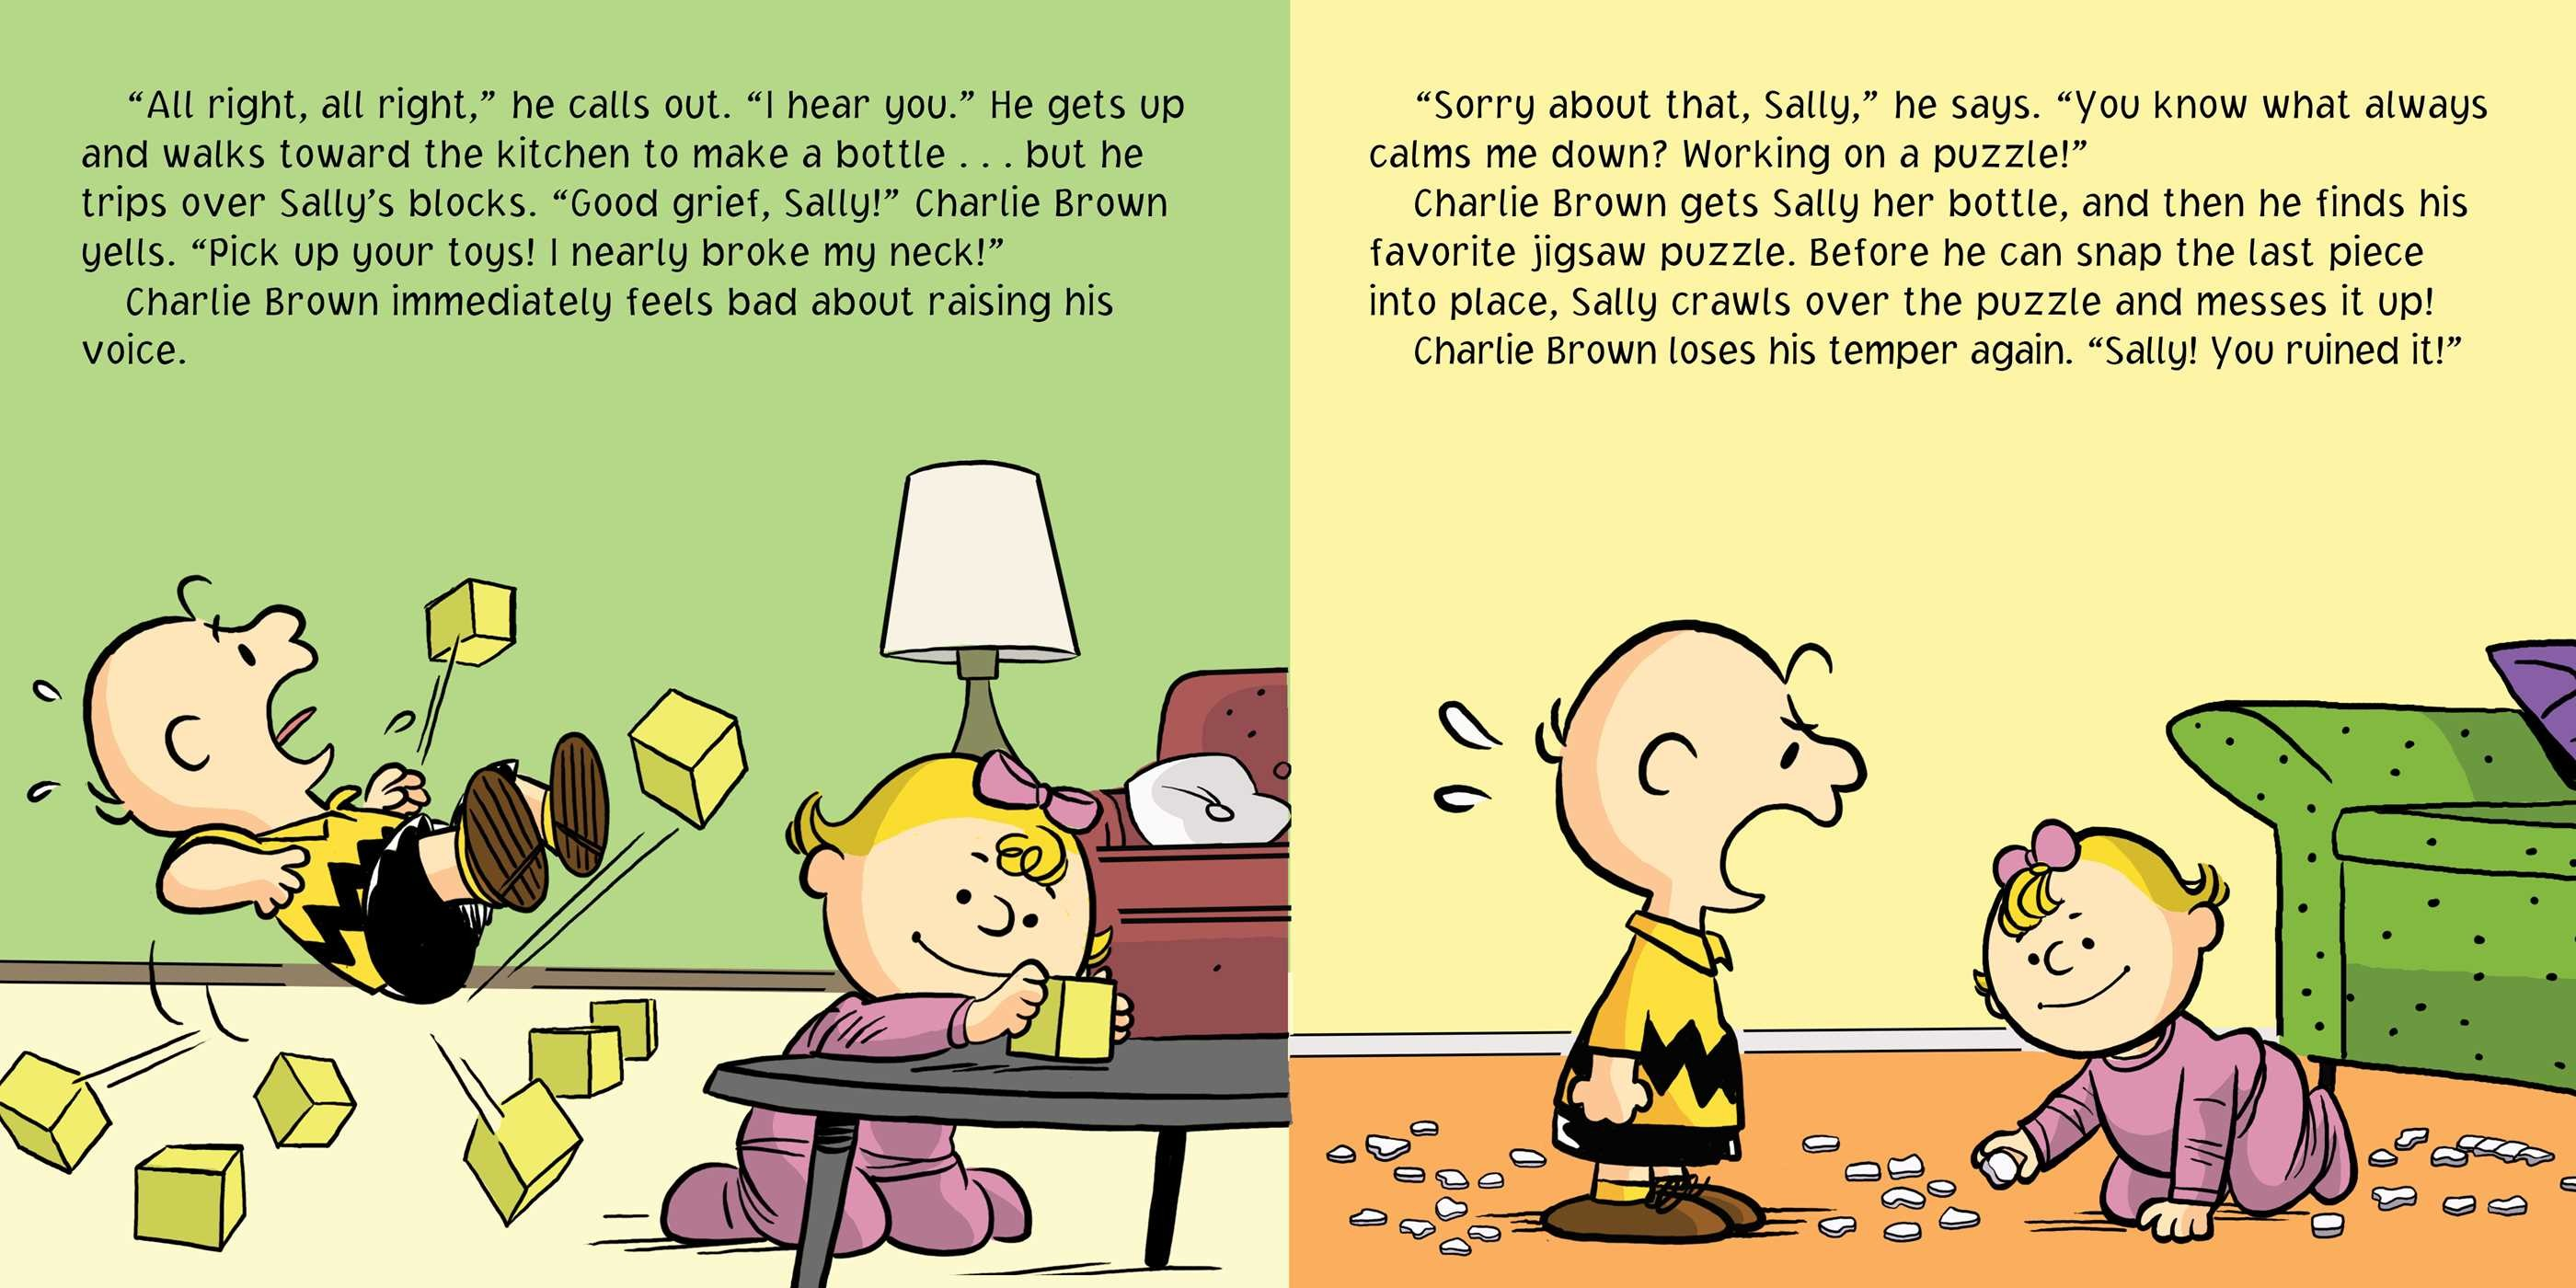 Youre a big brother charlie brown 9781534409613.in04